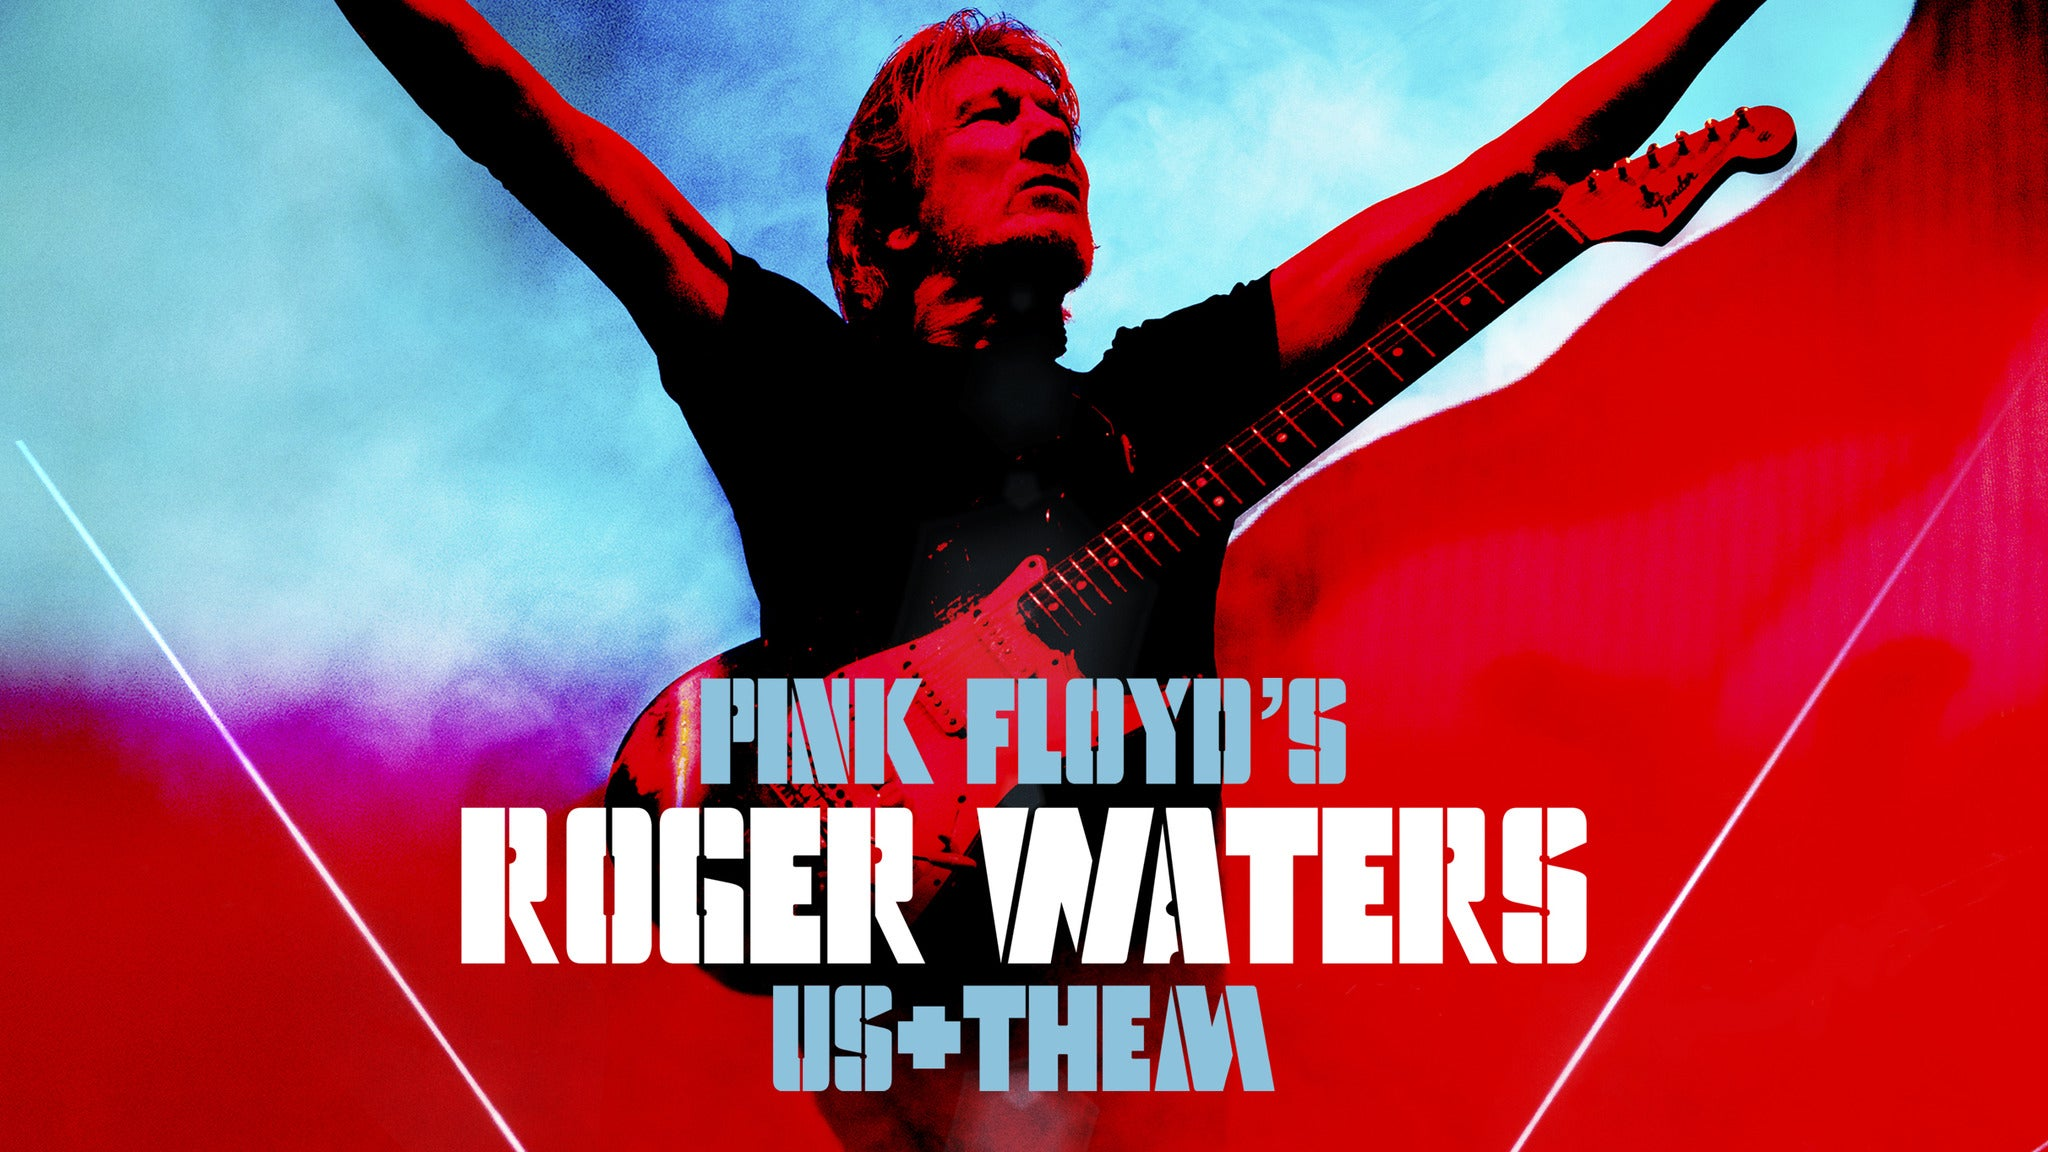 Roger Waters: This Is Not a Drill at Capital One Arena - Washington, DC 20004